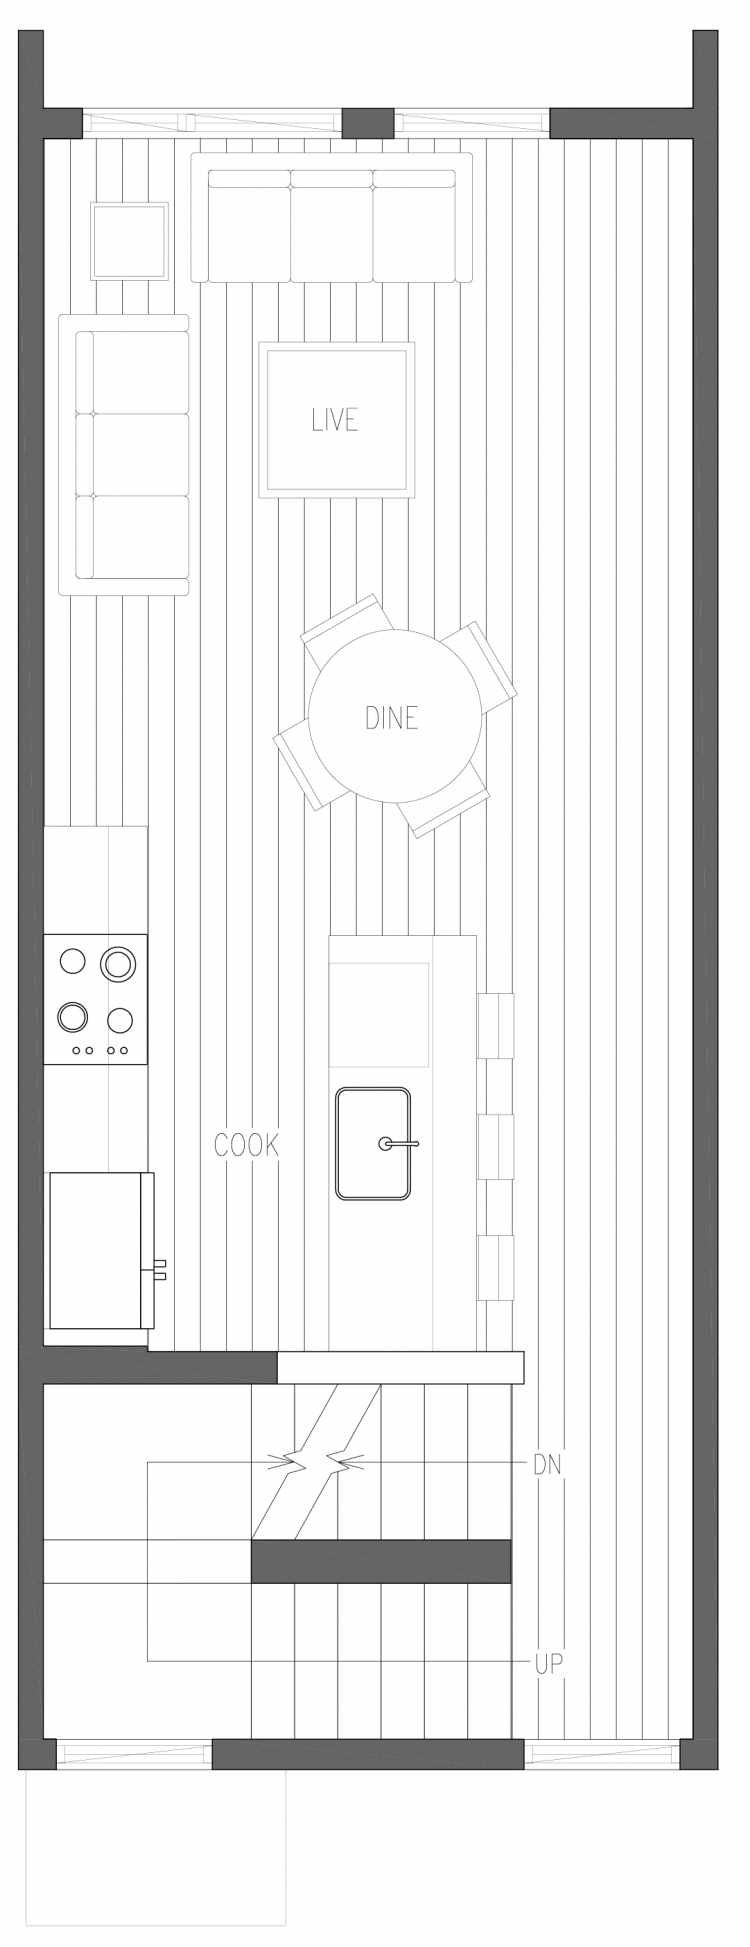 Second Floor Plan of 6417 14th Ave NW, One of the Oleana Townhomes in Ballard by Isola Homes